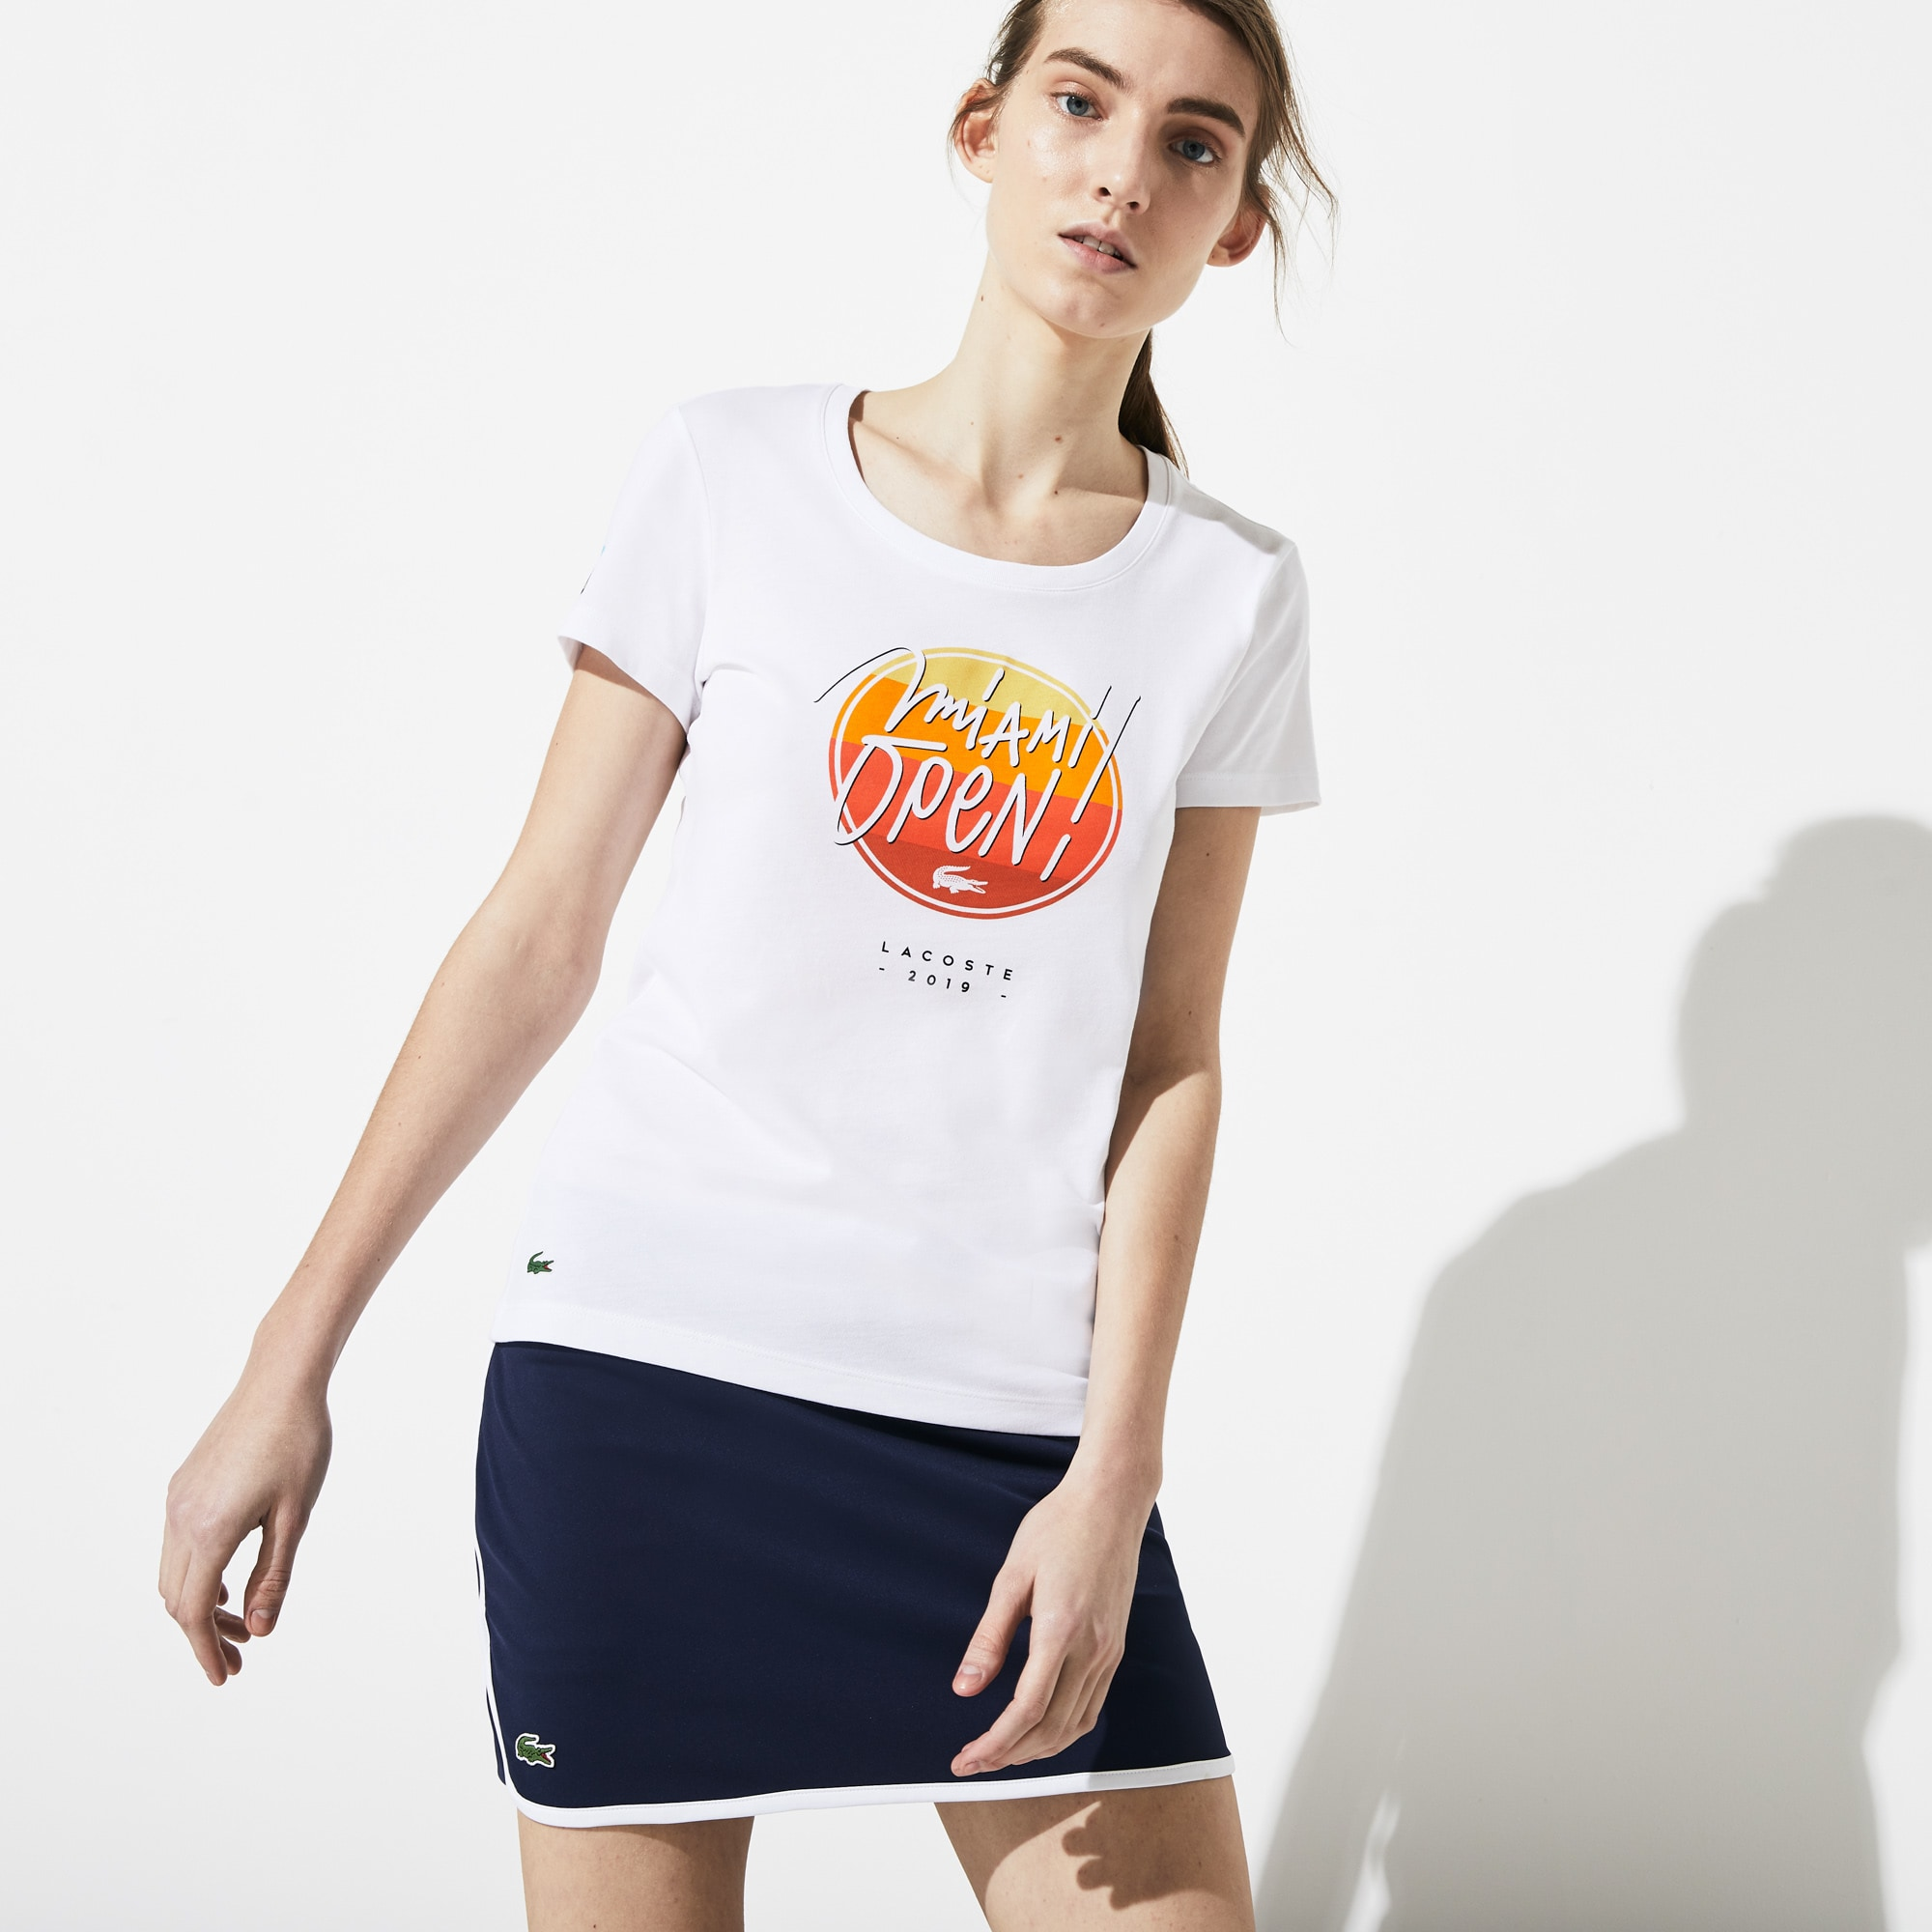 Women's SPORT Miami Open Edition T-shirt